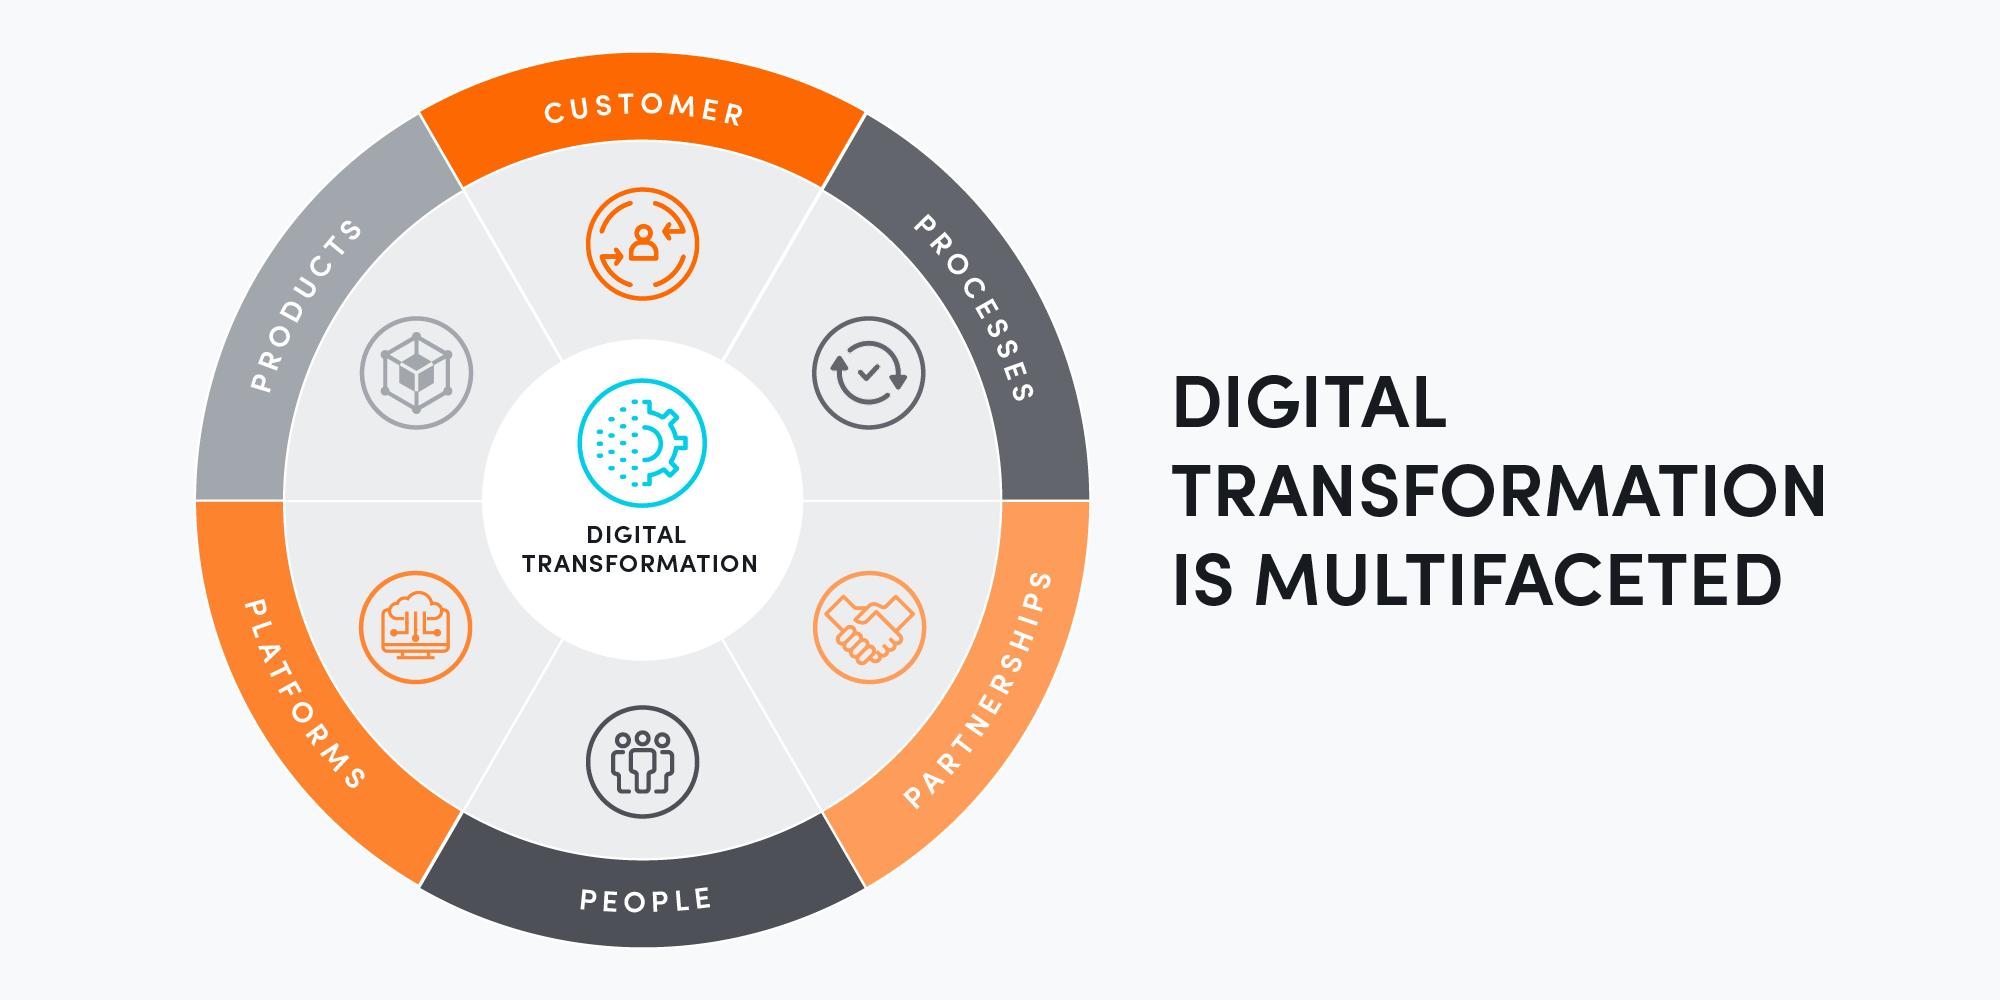 Digital transformation is multi-faceted